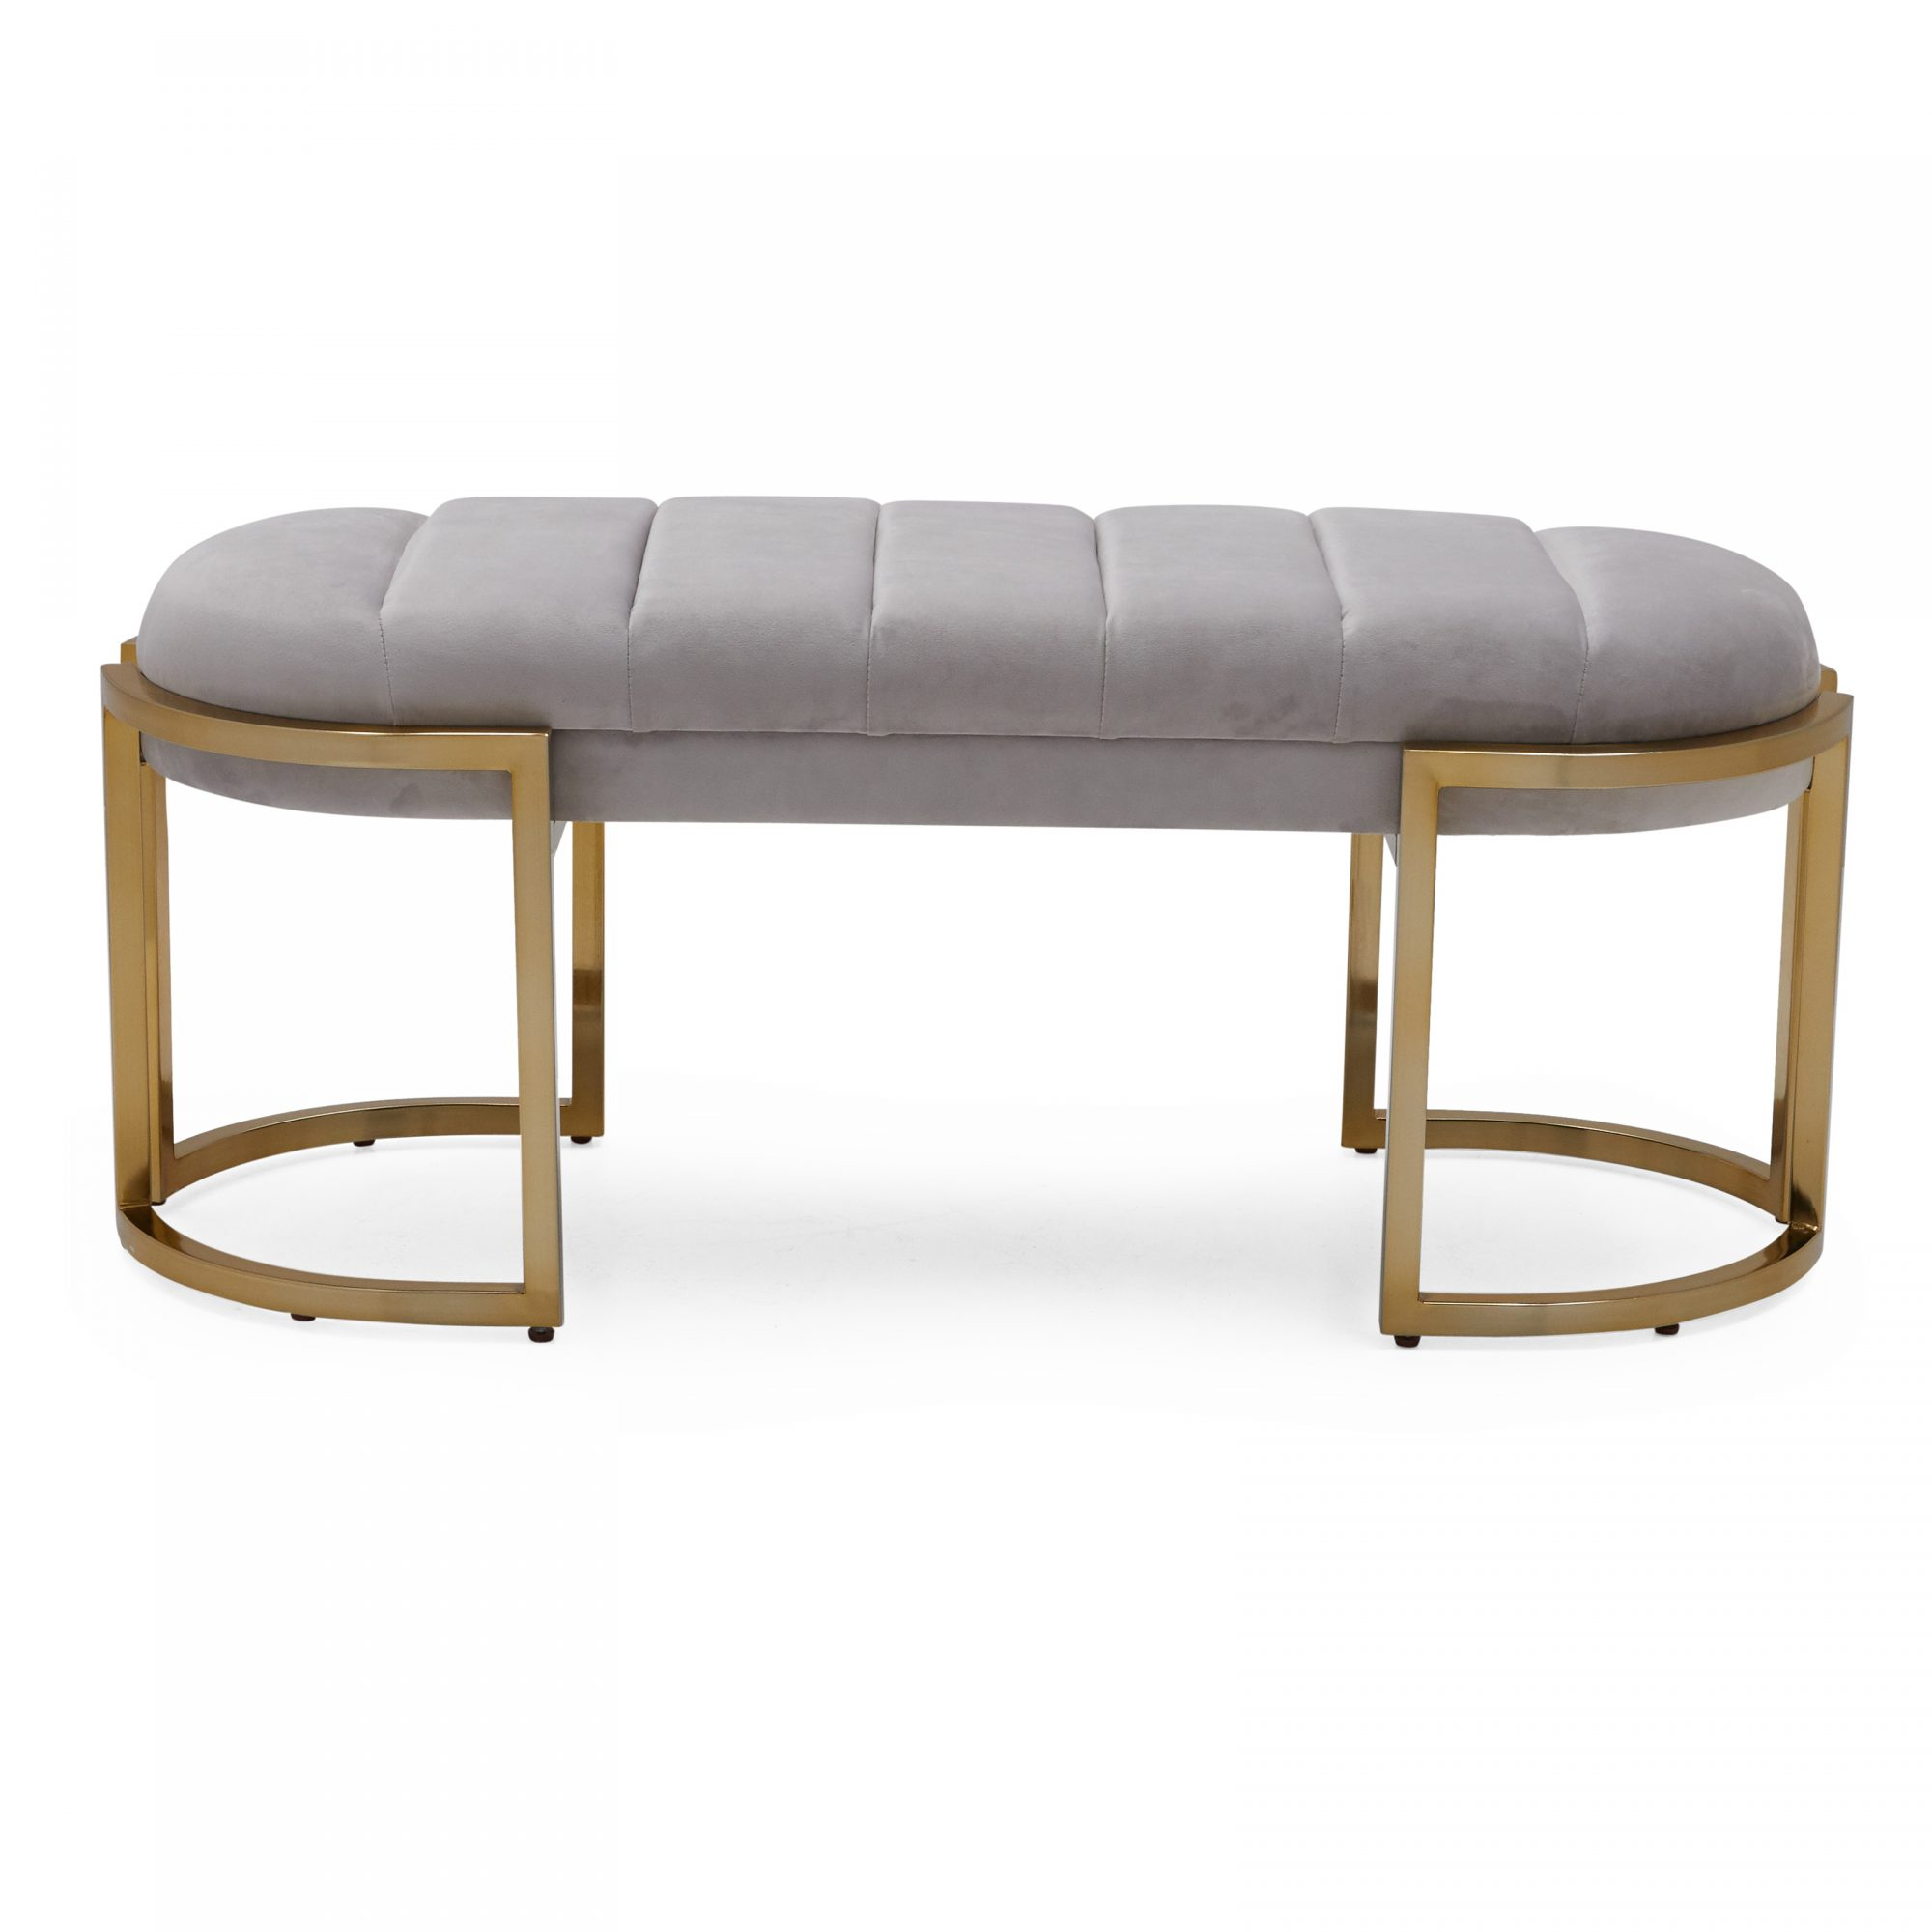 Walmart New Home Collection: MoDRN Glam Marni Channel Tufted Bench